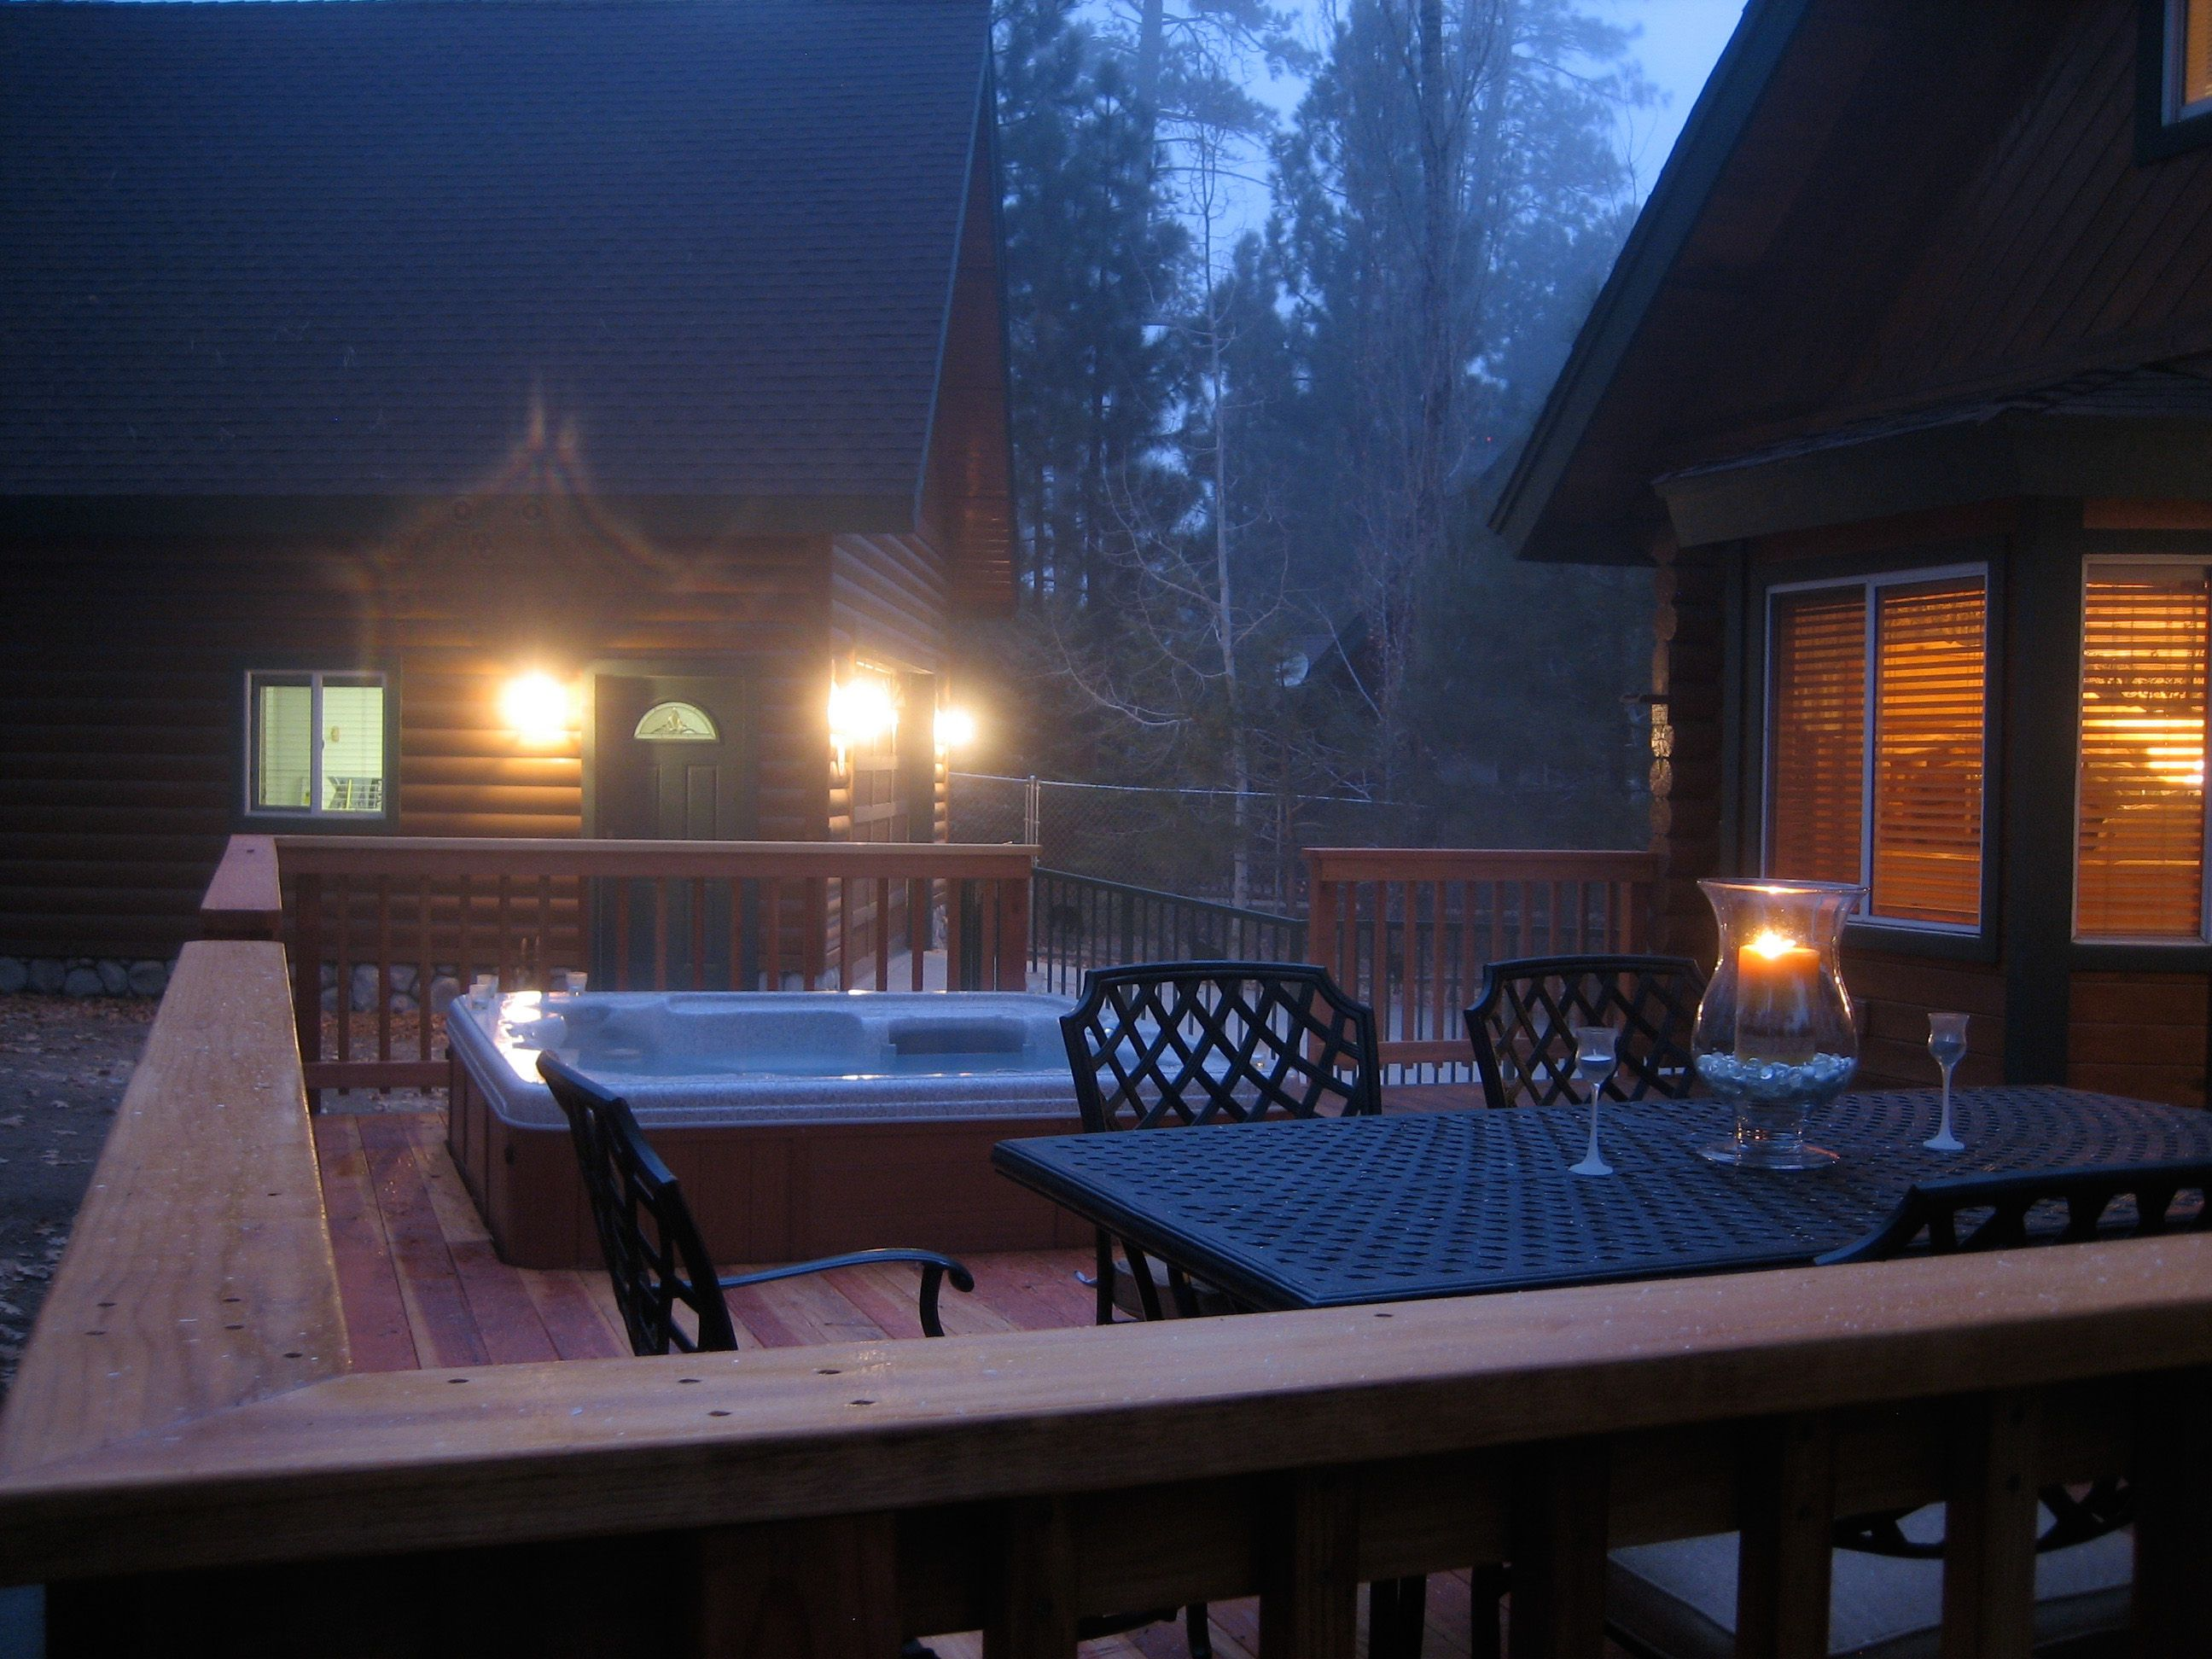 Beautiful hot tub in the back yard deck! Log cabin